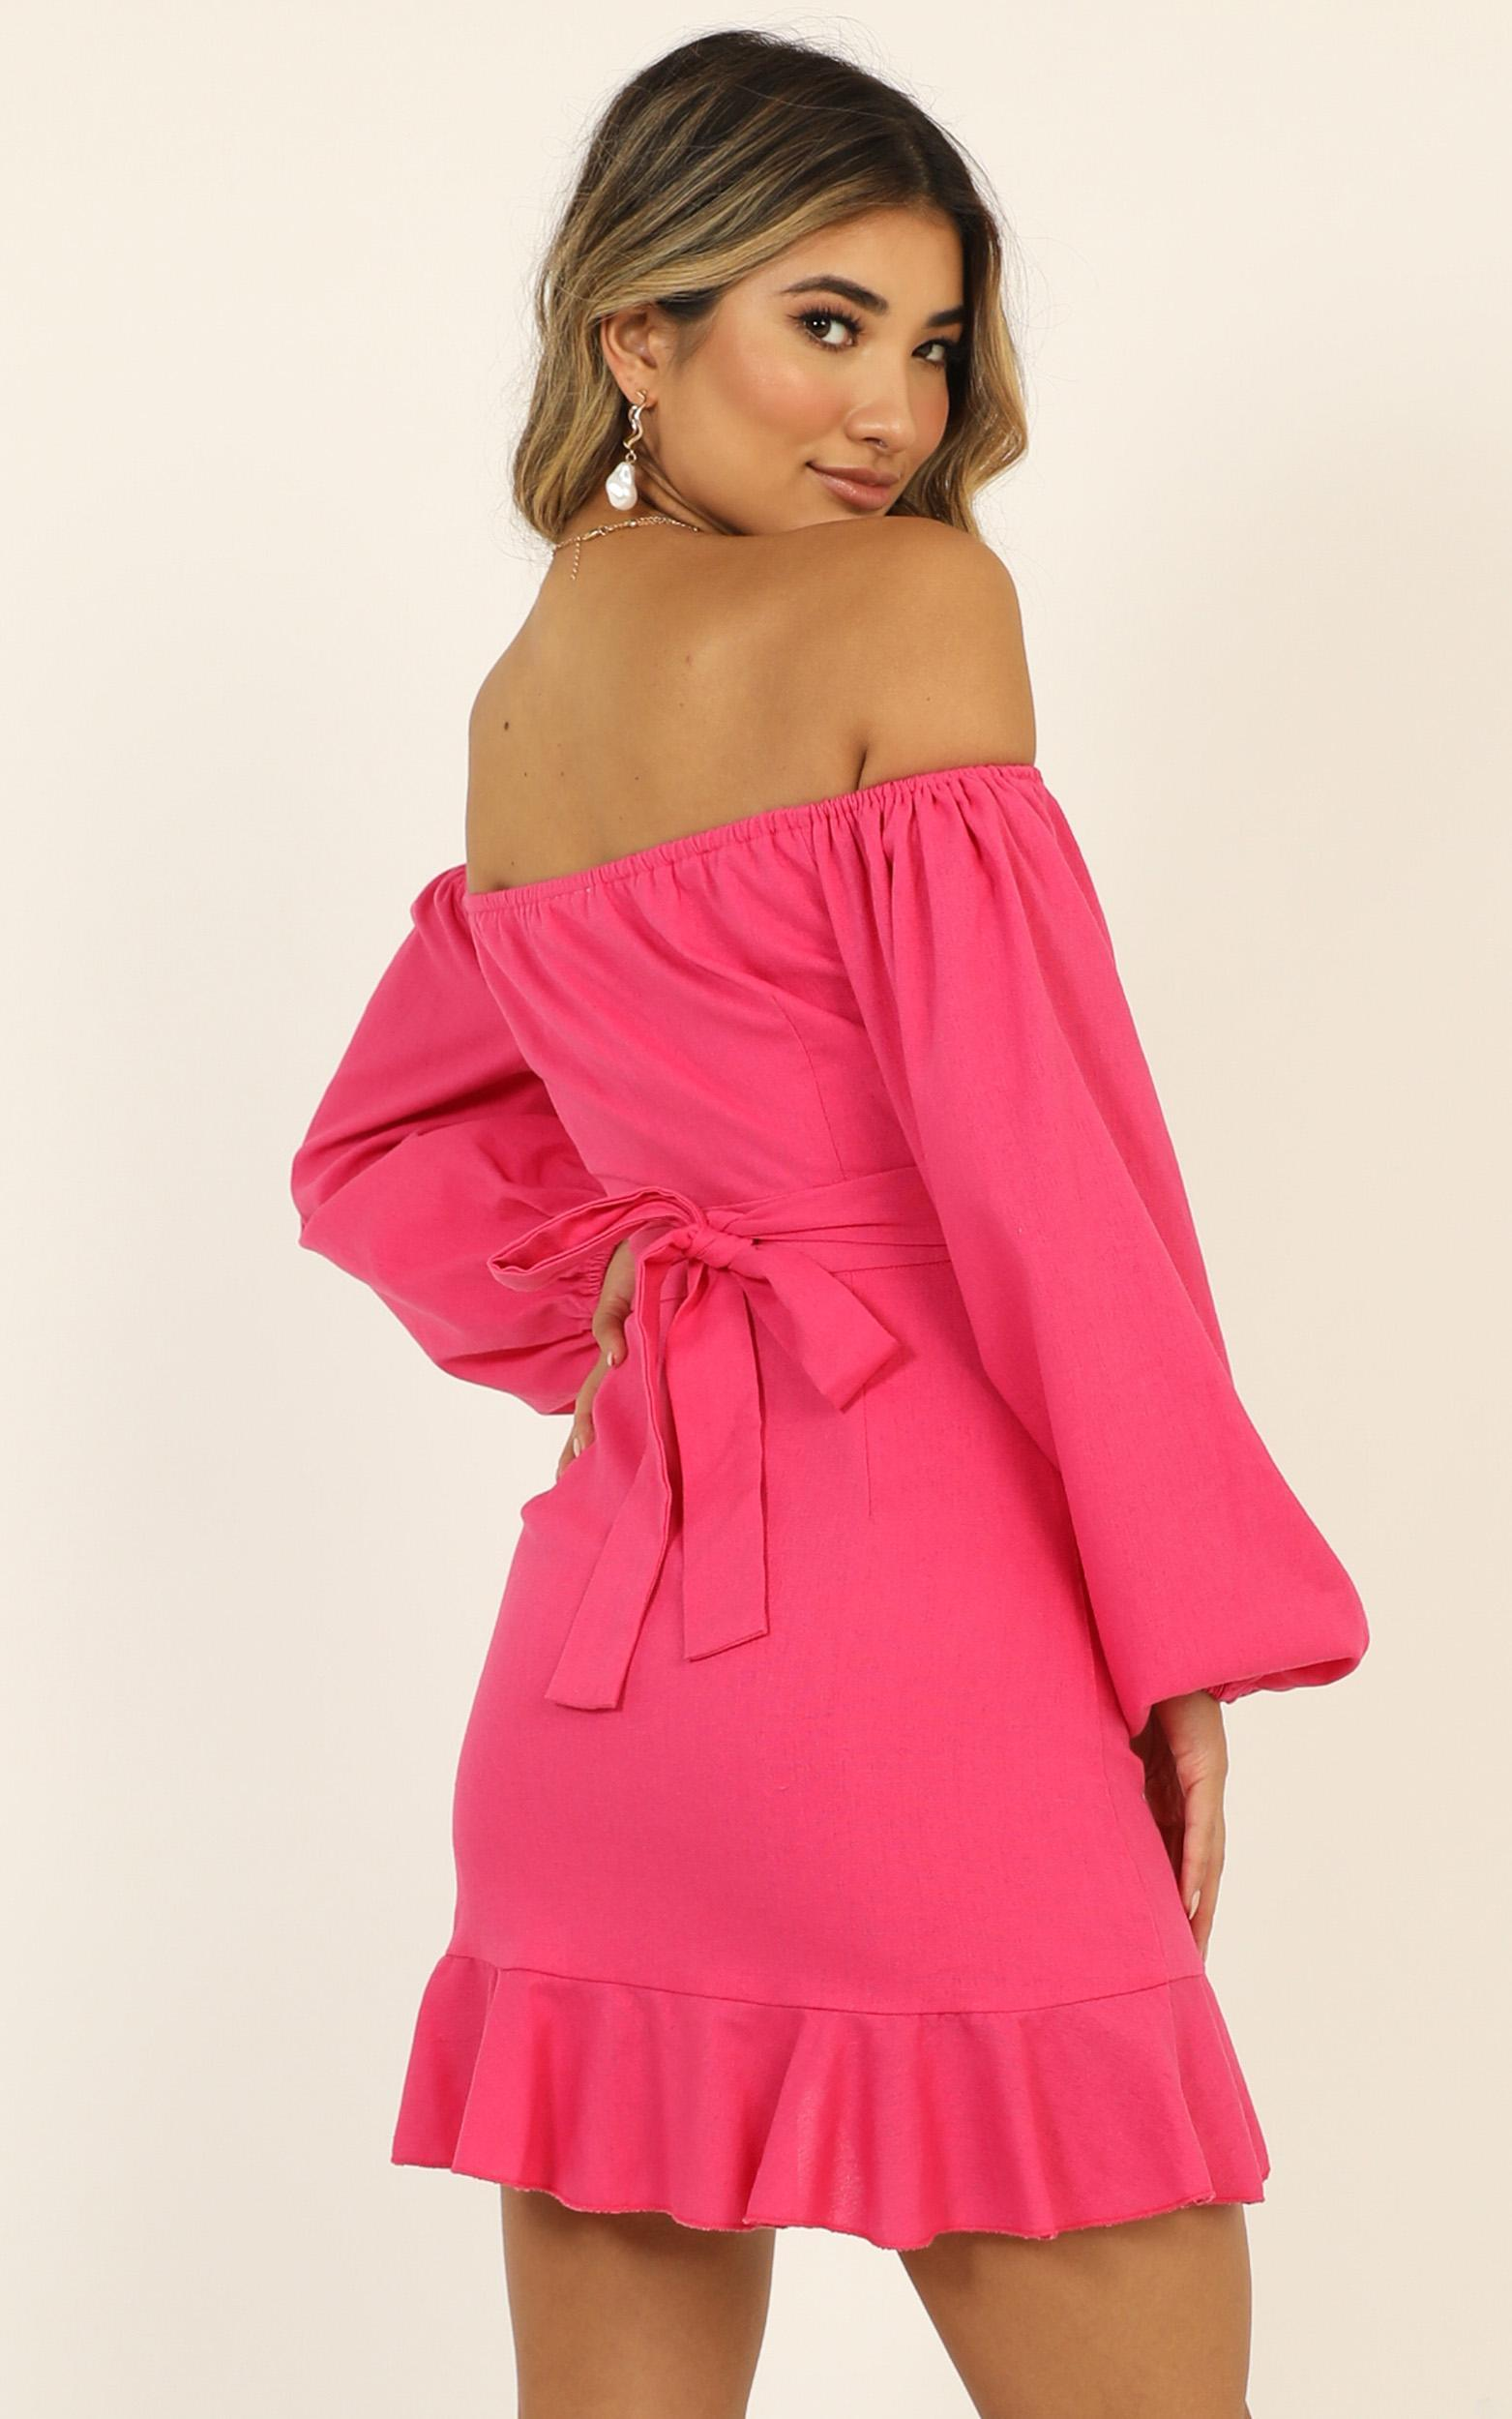 Cant Move On Dress in hot pink linen look - 20 (XXXXL), Pink, hi-res image number null